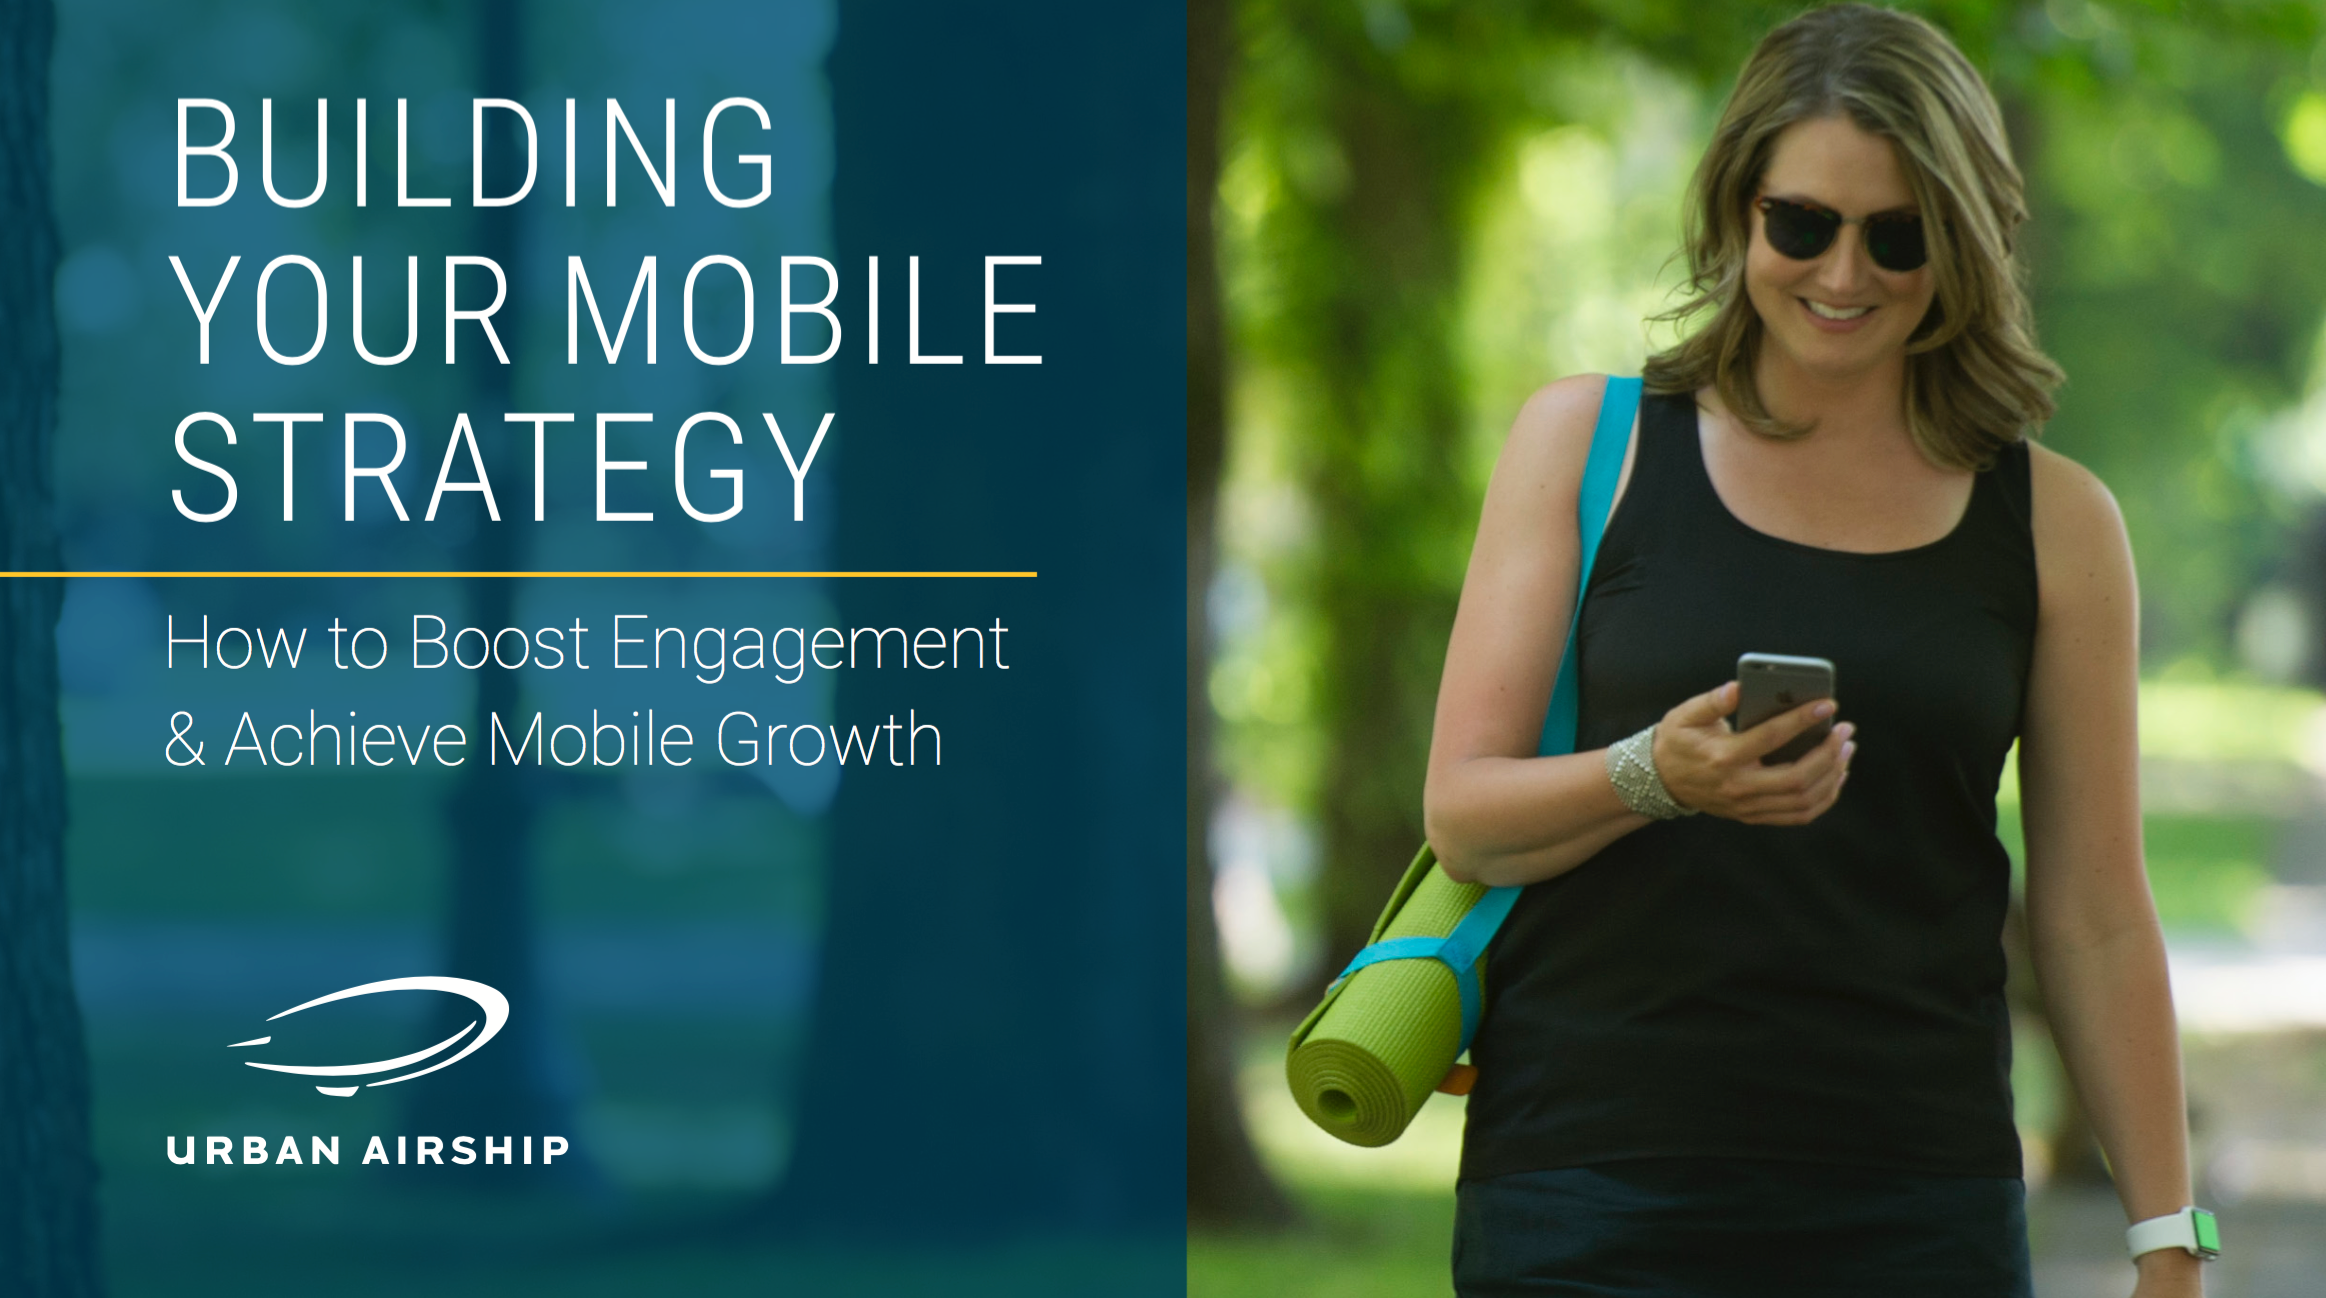 building your mobile strategy eBook cover